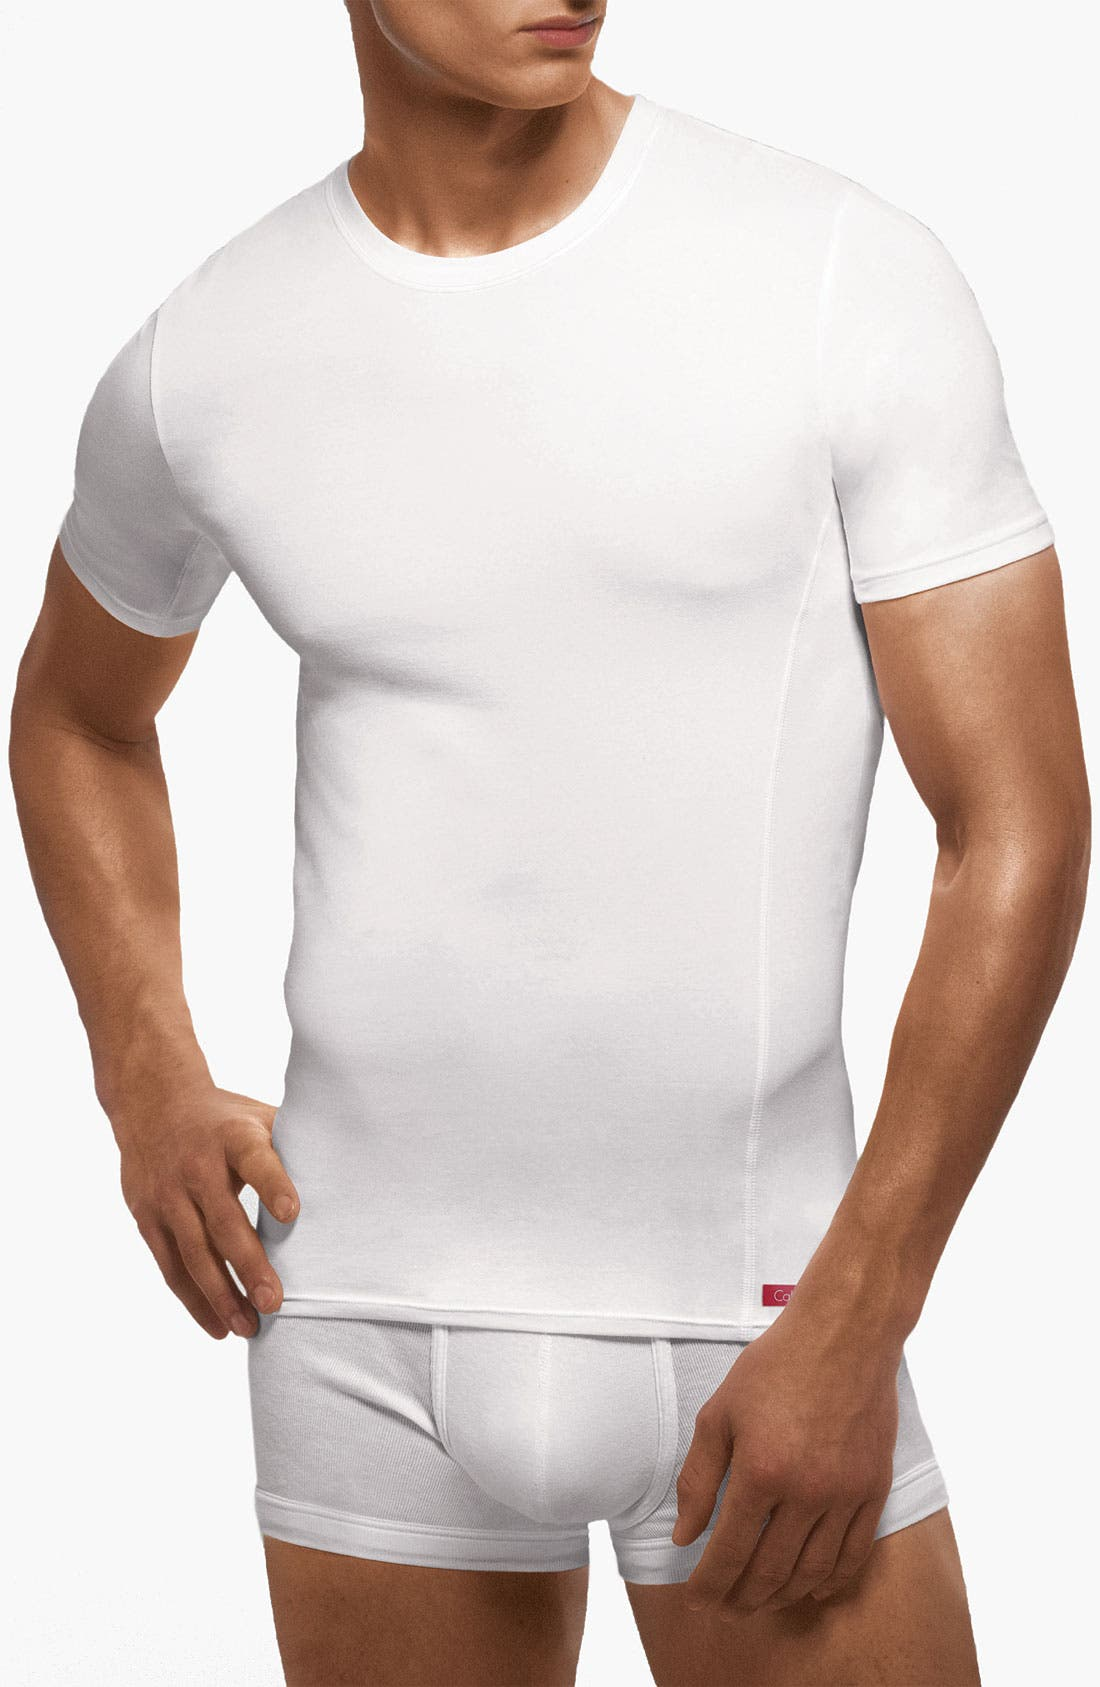 Main Image - Calvin Klein 'Pro Stretch' Slim Fit T-Shirt